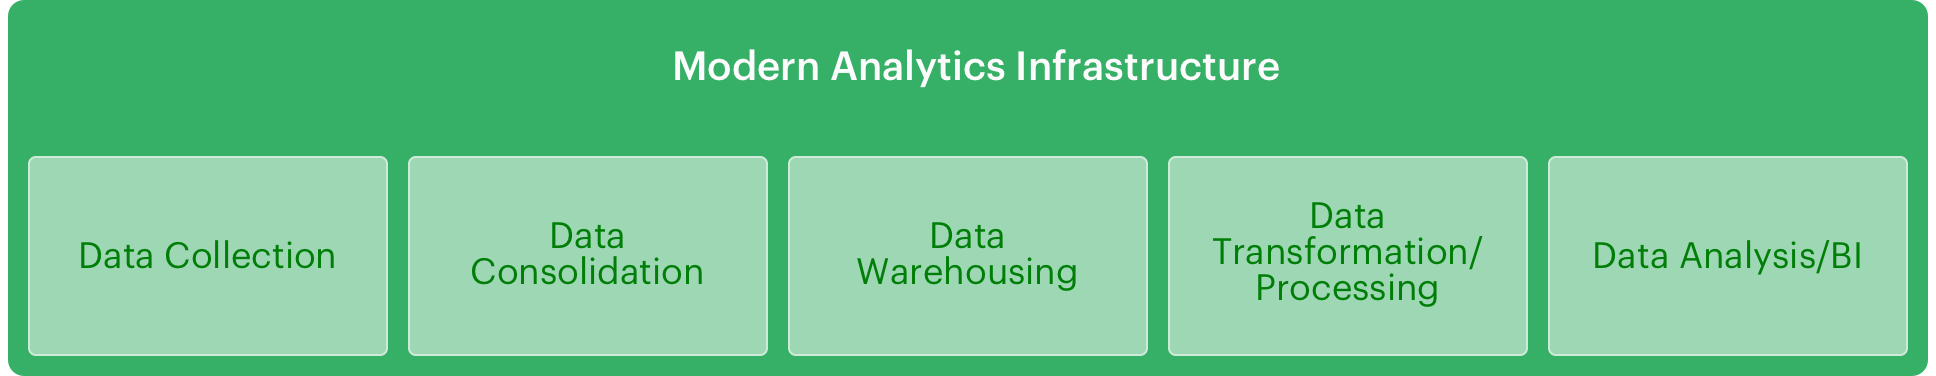 Modern Analytics Infrastructure